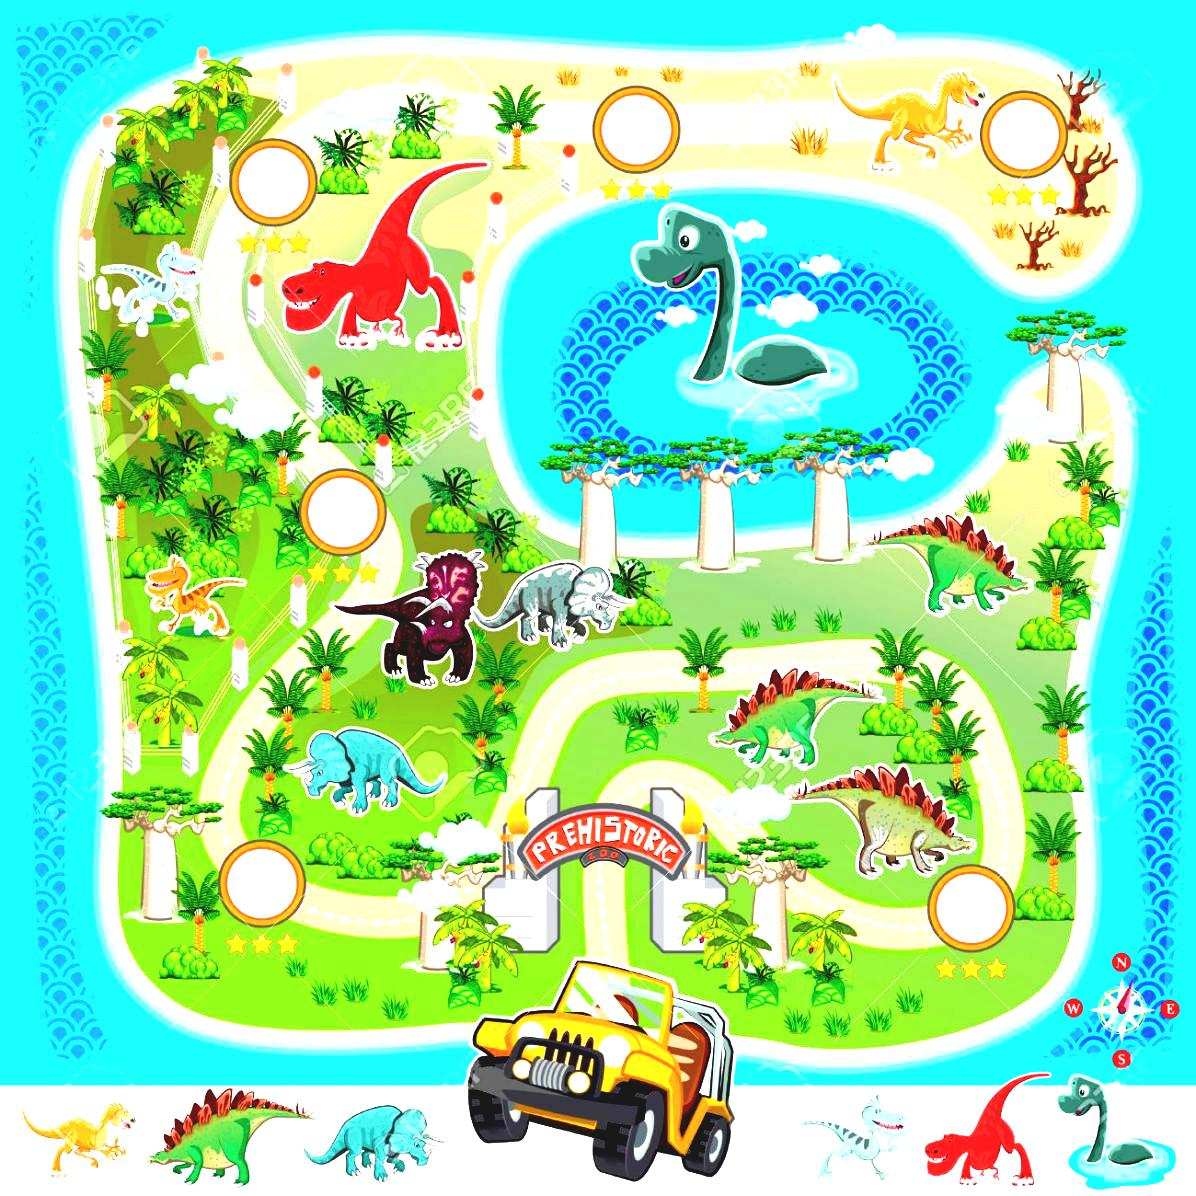 Kids road map clipart vector royalty free stock Simple road map clipart - ClipartFox vector royalty free stock